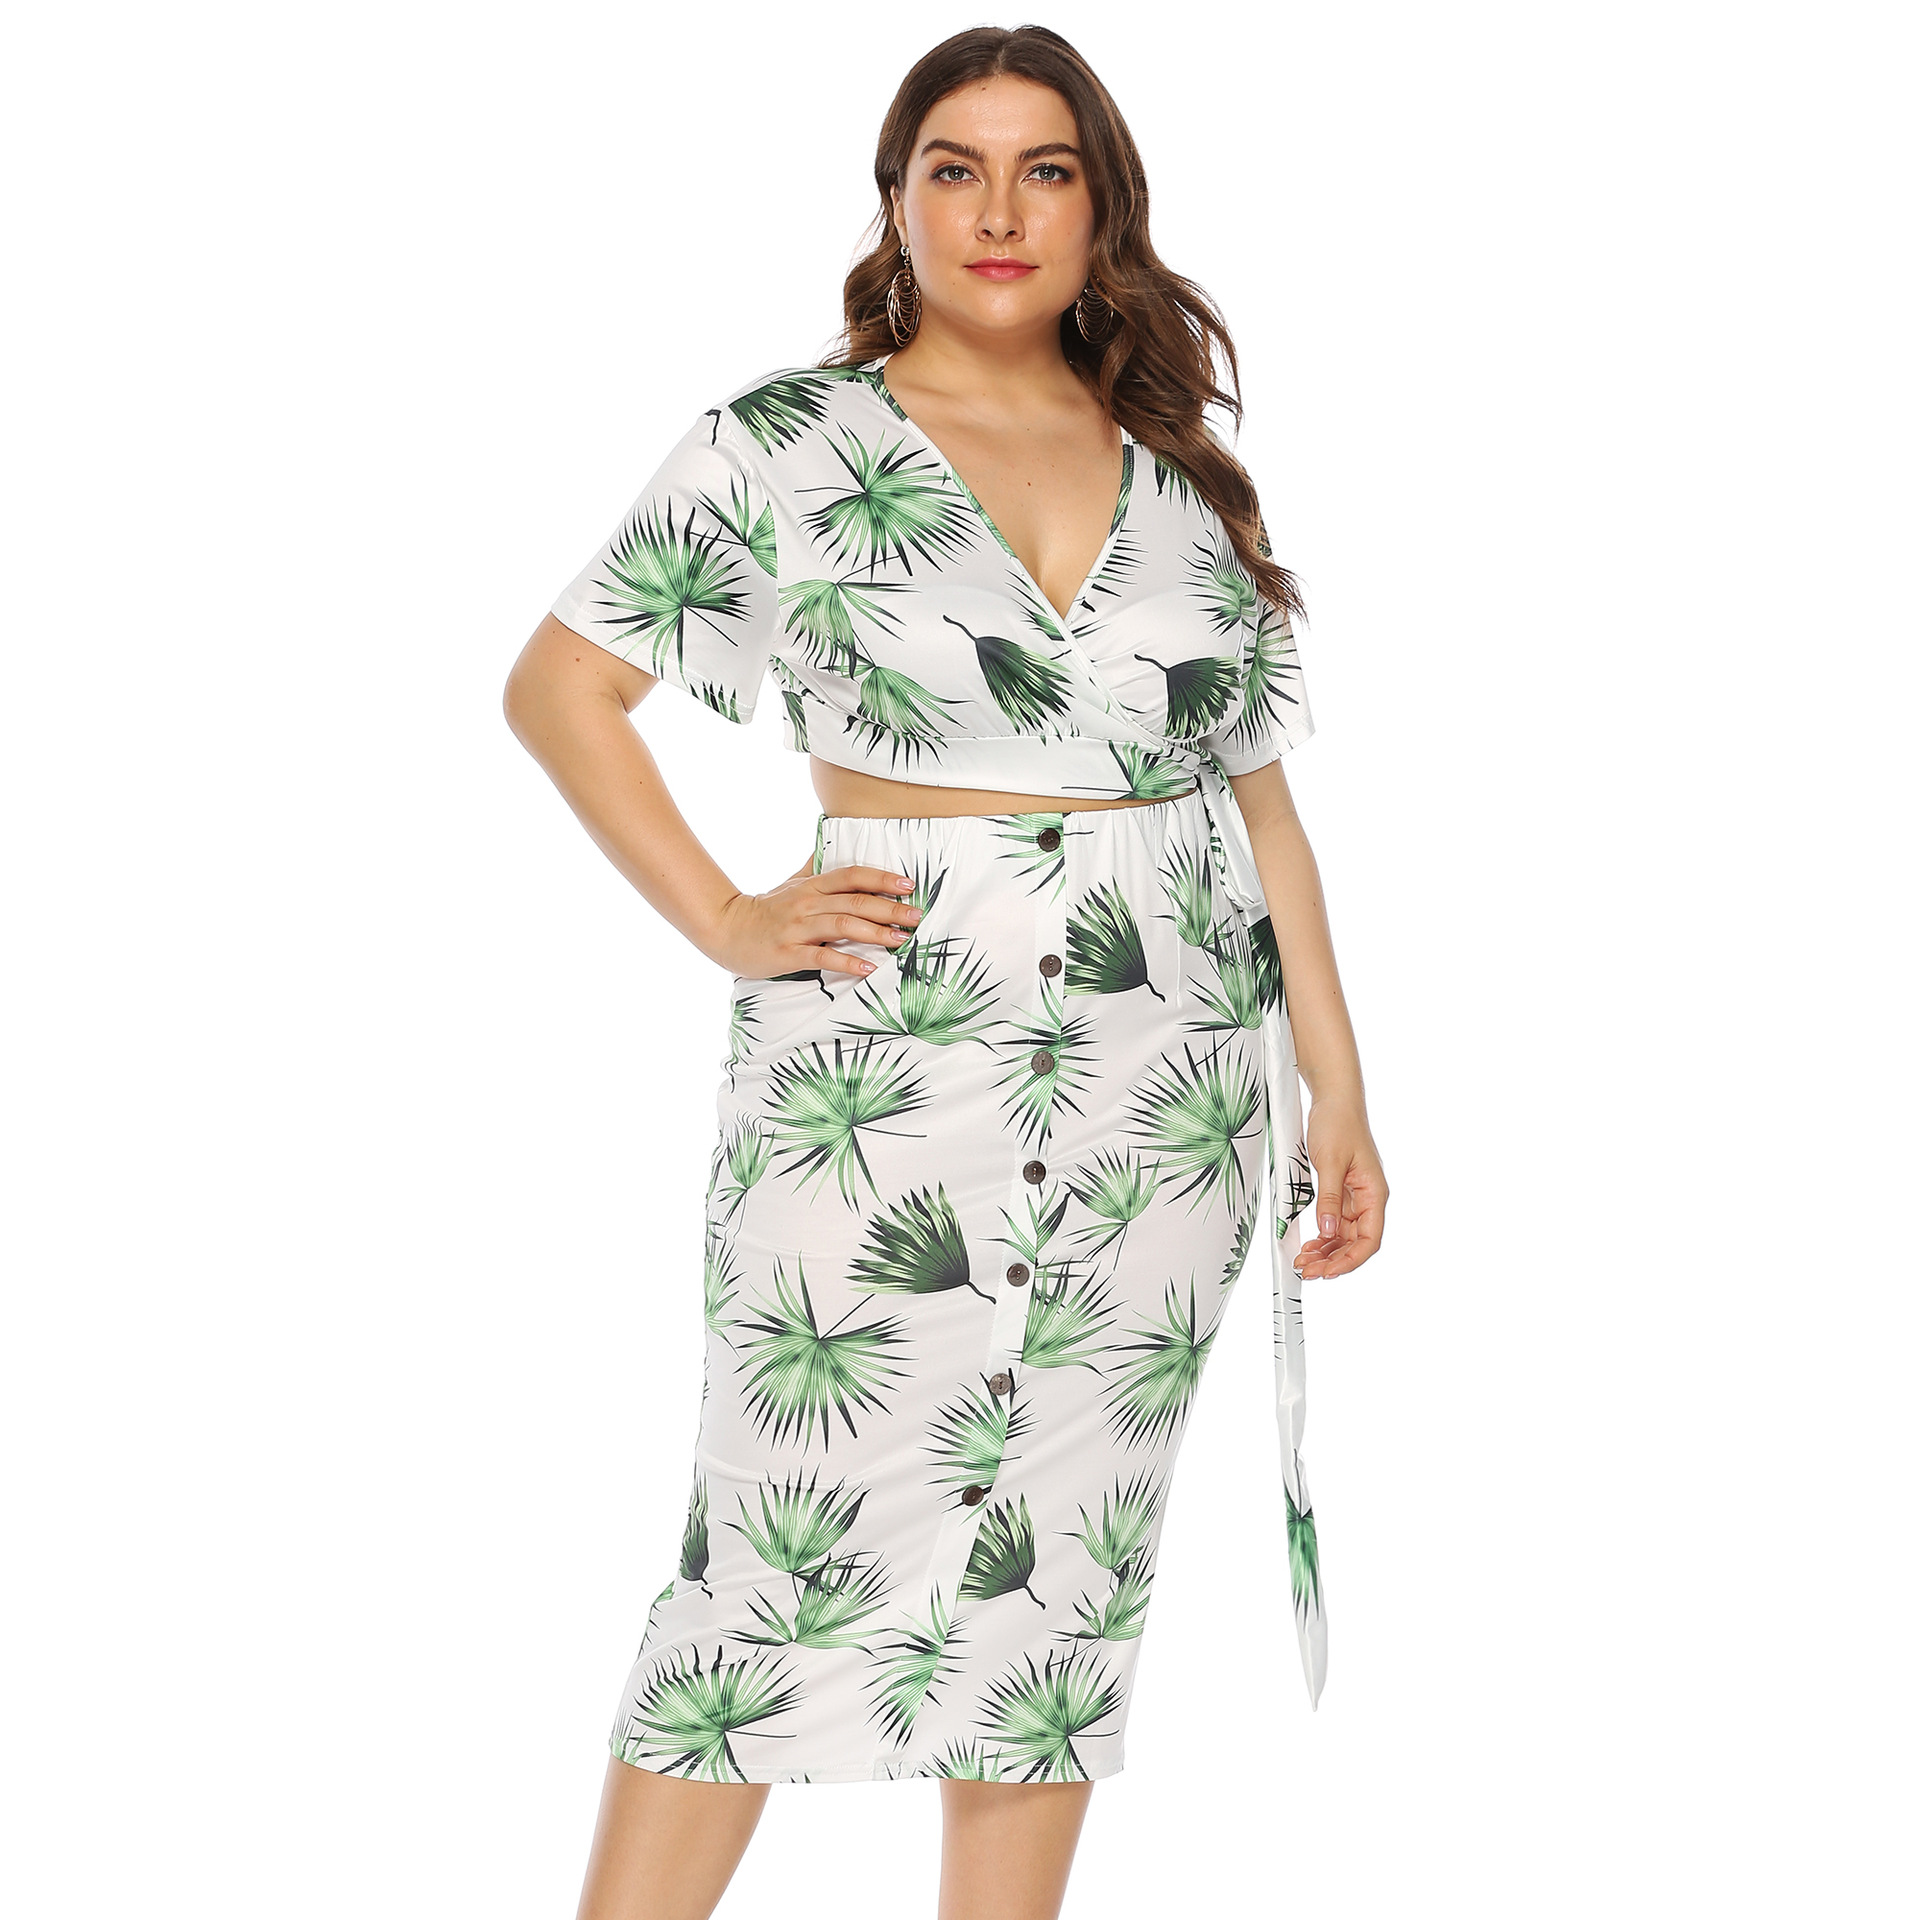 Large Size Dress Leaf Printed Bandage Cloth Button Short Sleeve Deep-V Navel Skirt Two-Piece Set Women's 14000